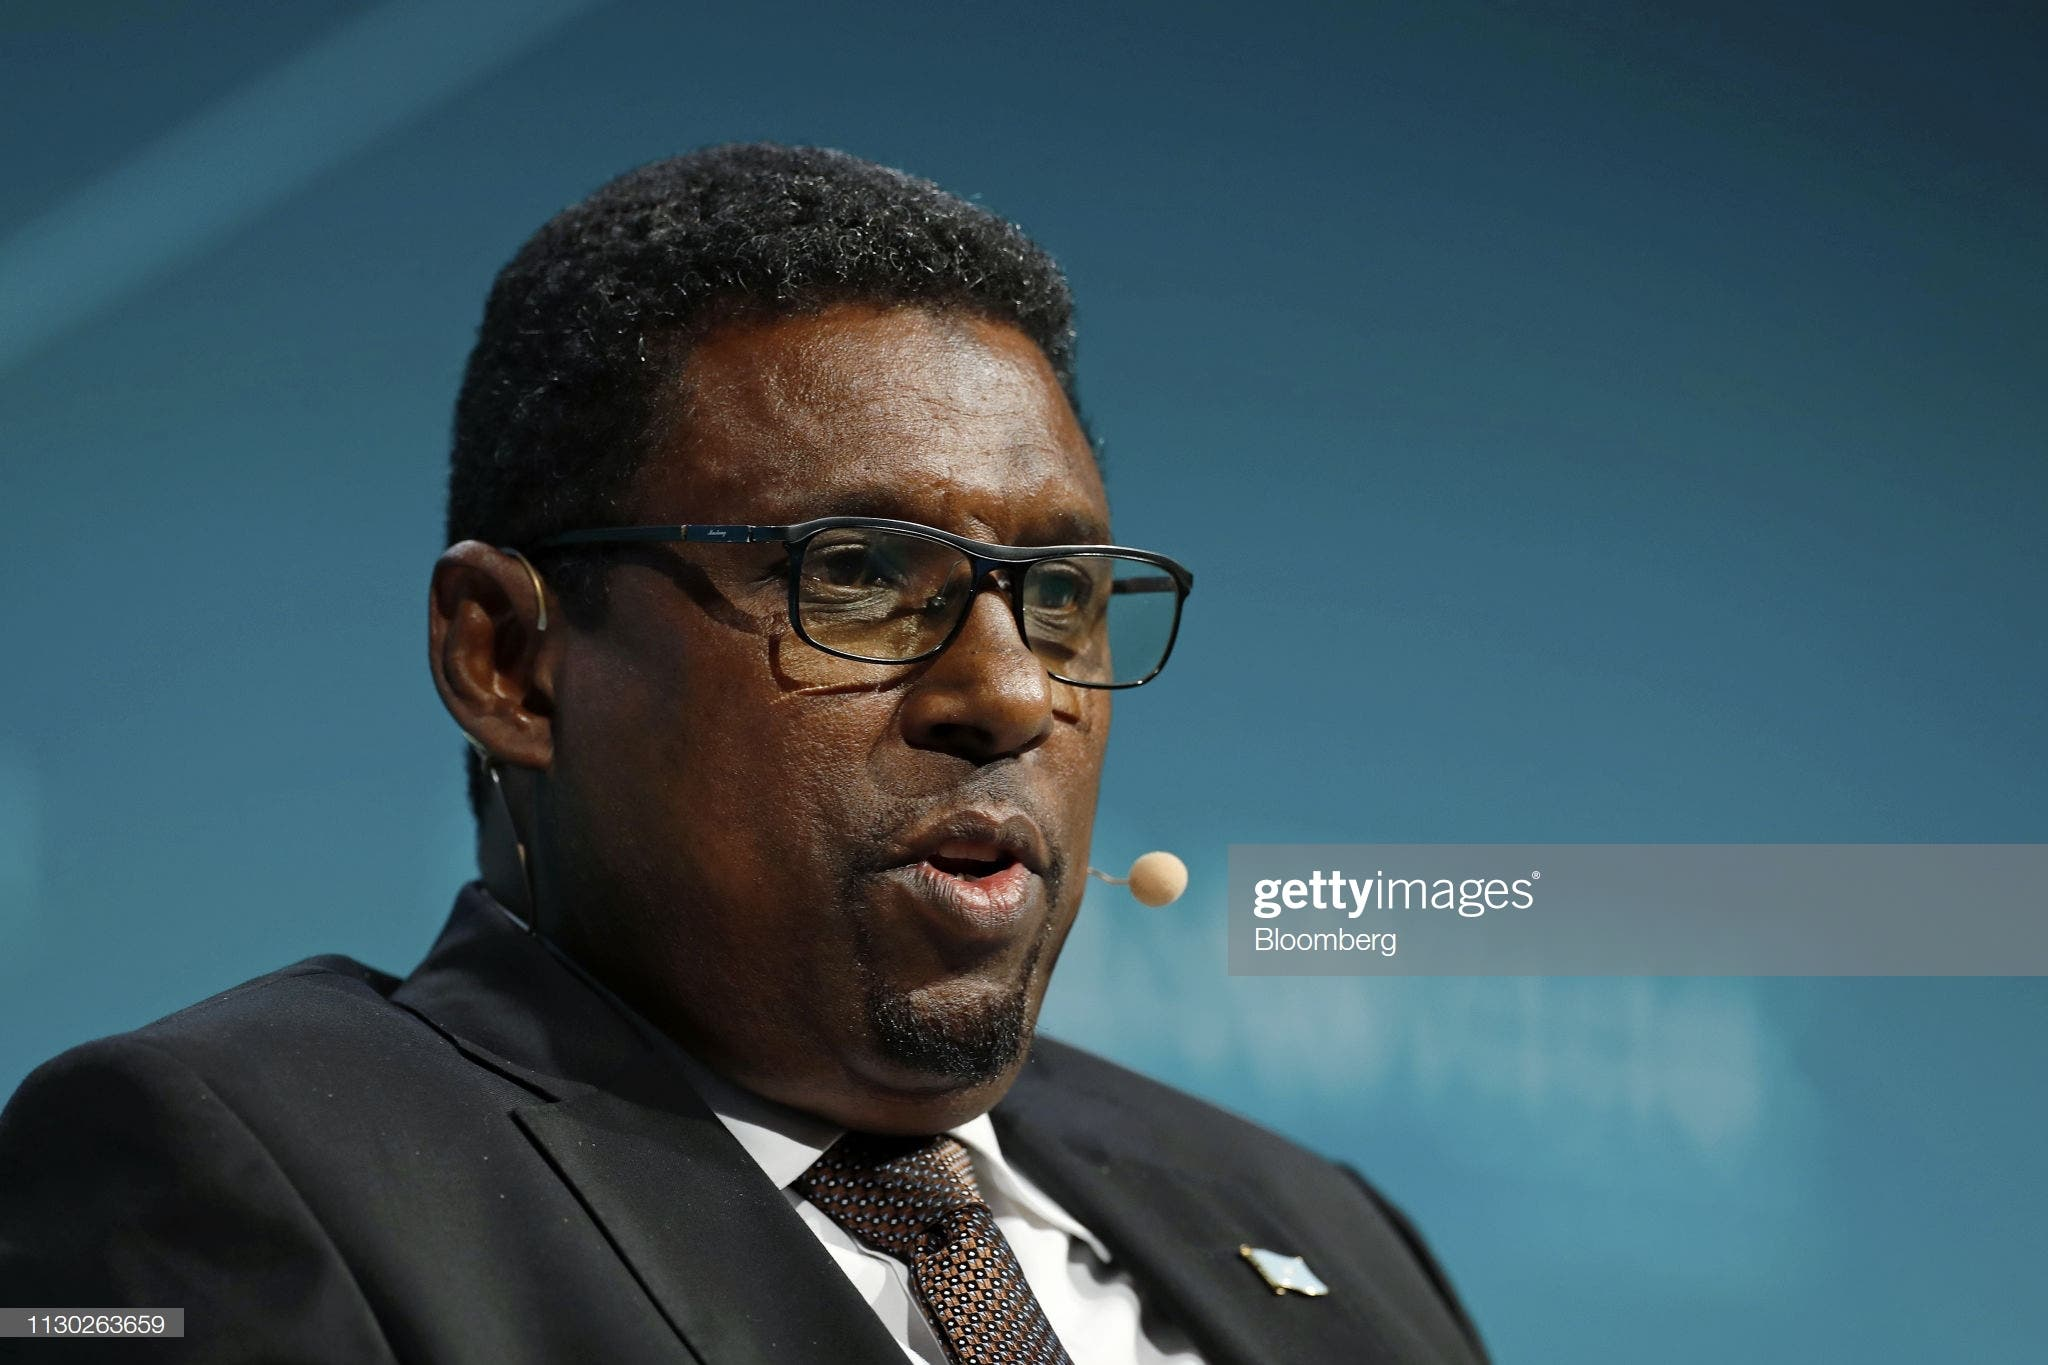 Somalia to announce plans for first oil licensing round in December